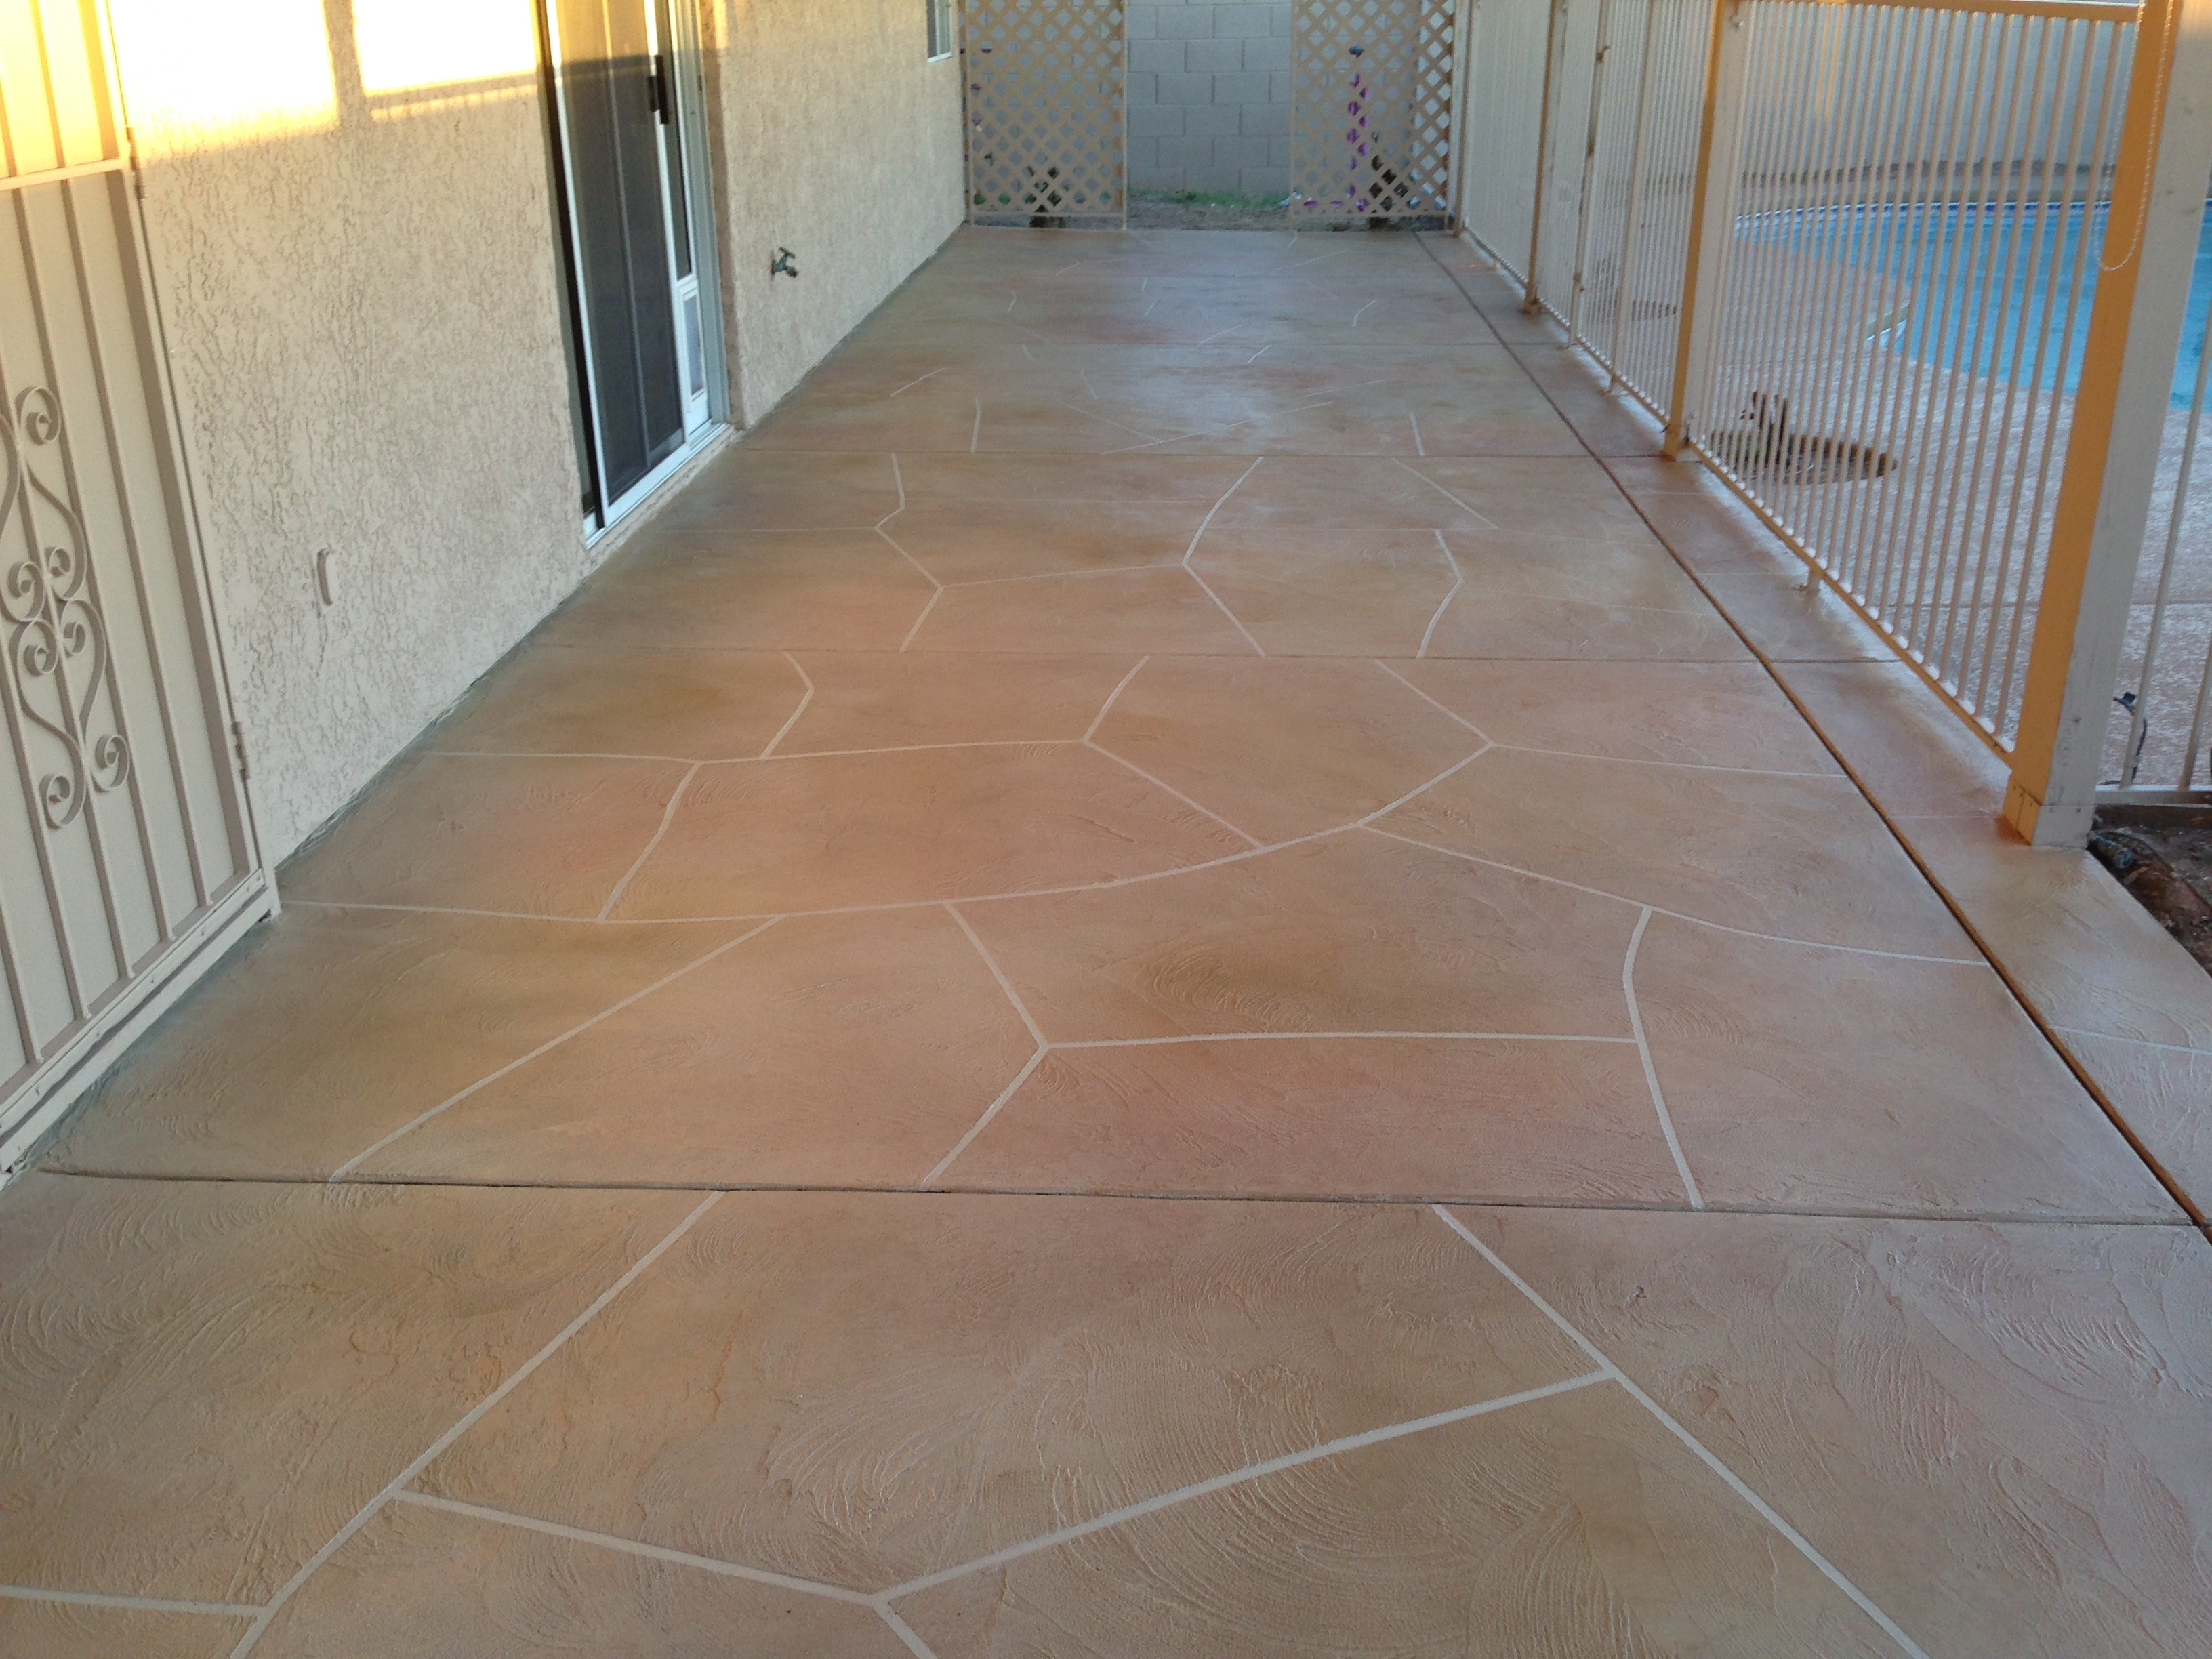 Decorative Concrete Flooring Overlays   WordPress.com